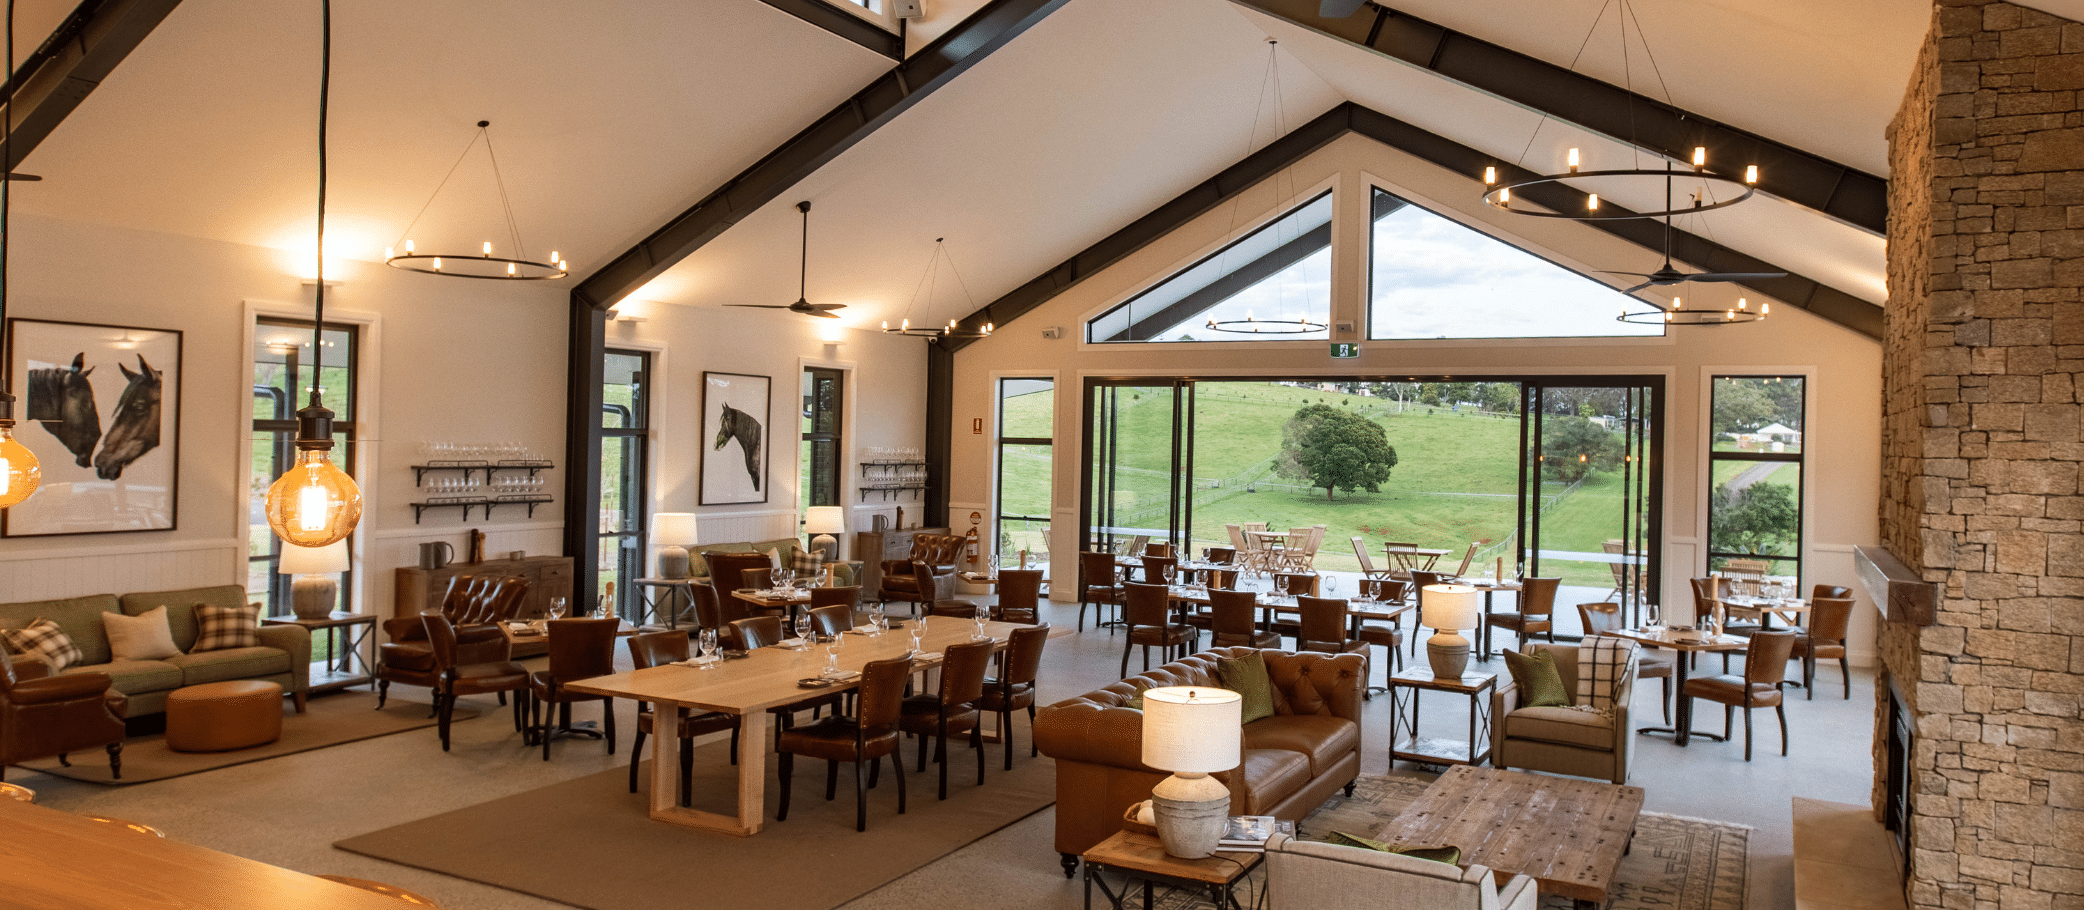 Interior of The Paddock restaurant with a modern farm house aesthetic